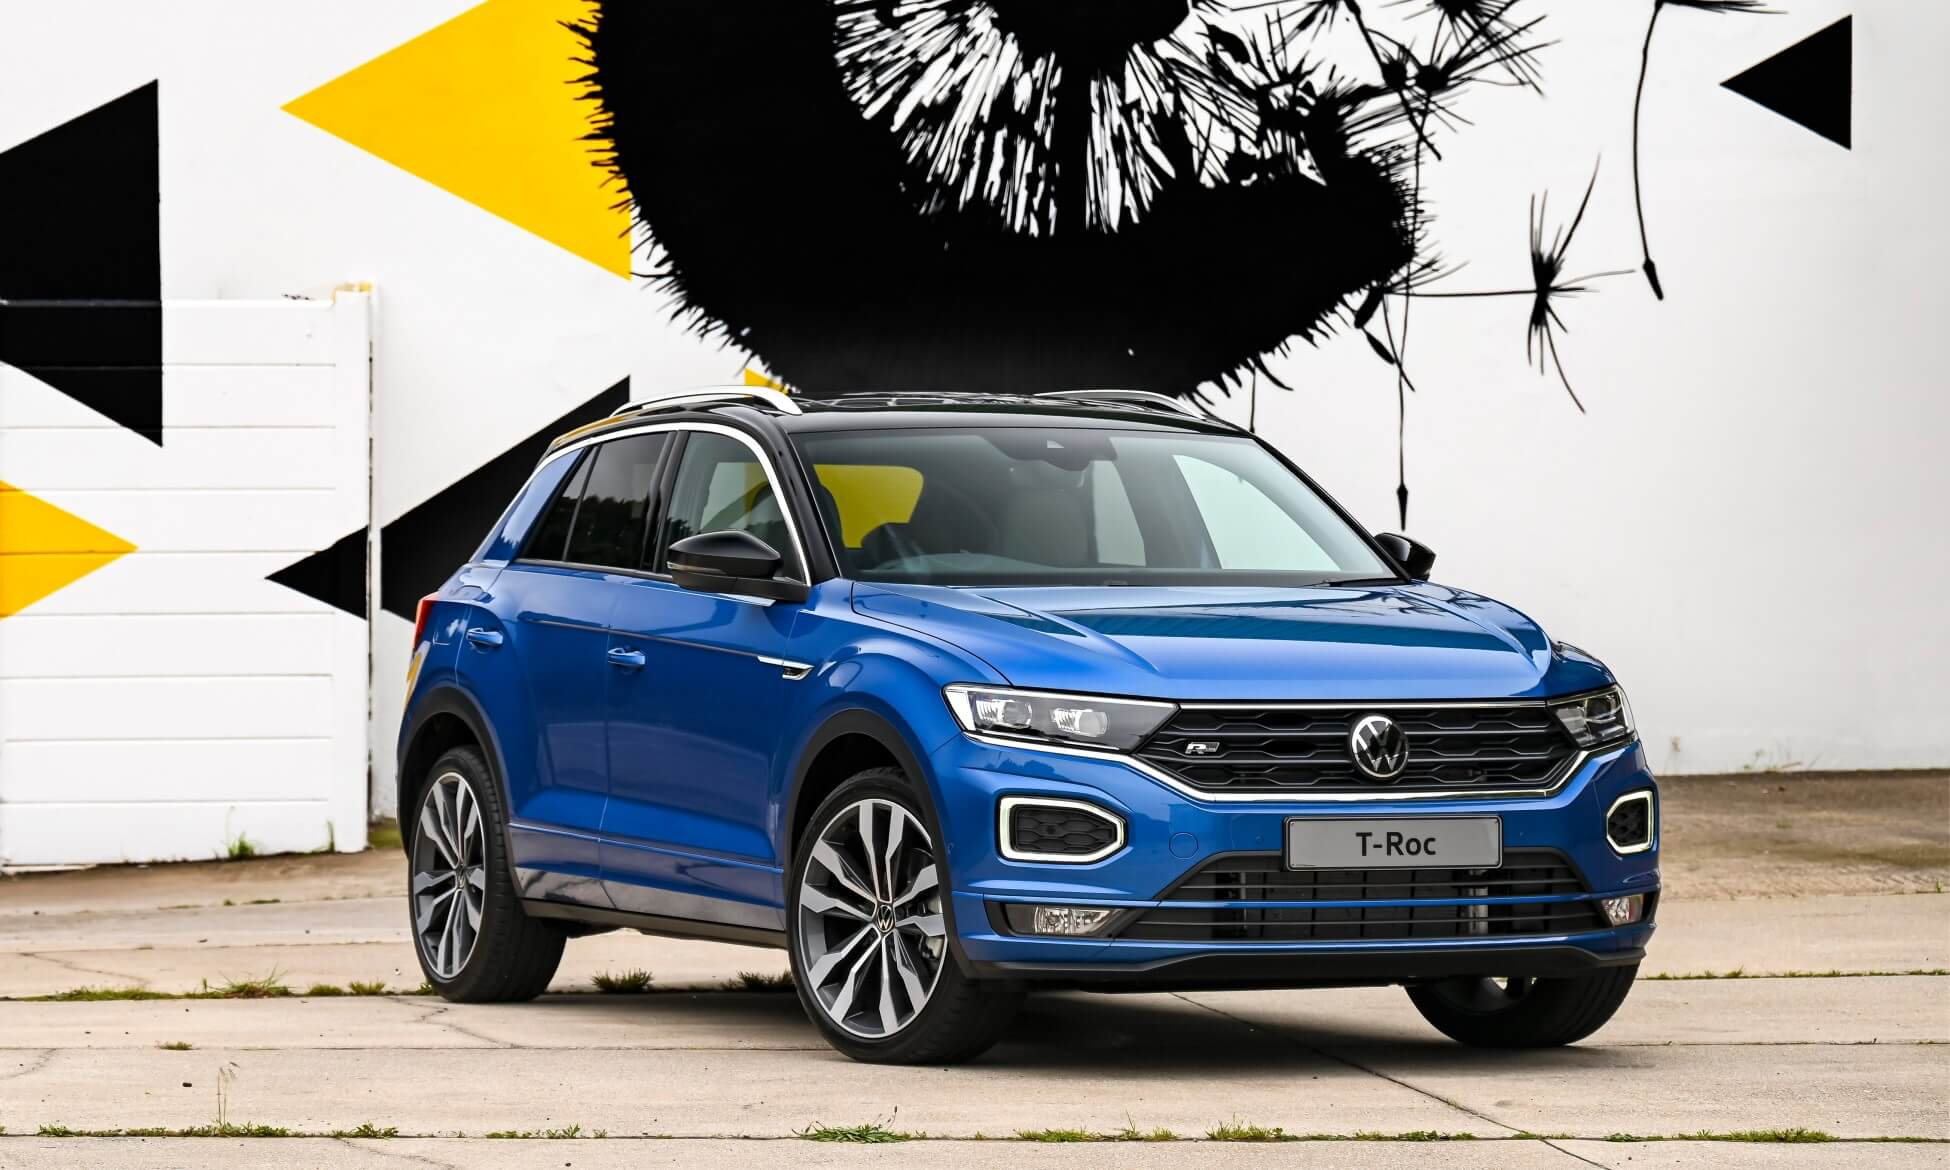 All-new VW T-Roc